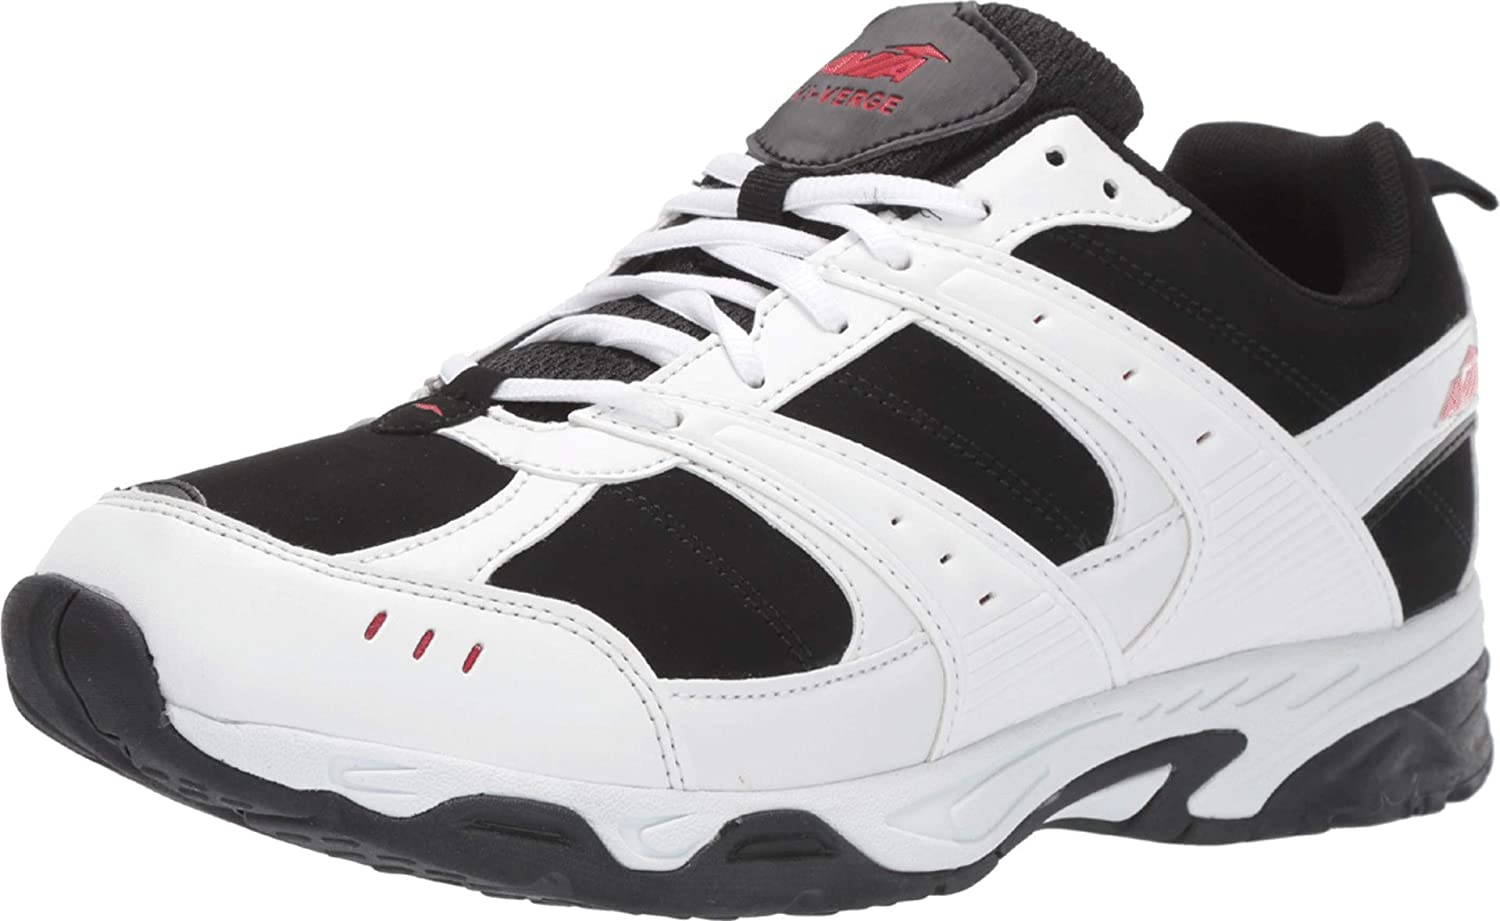 Avia Men's Avi-verge Walking Cross Sales Max 74% OFF of SALE items from new works Training Tennis Weig Gym